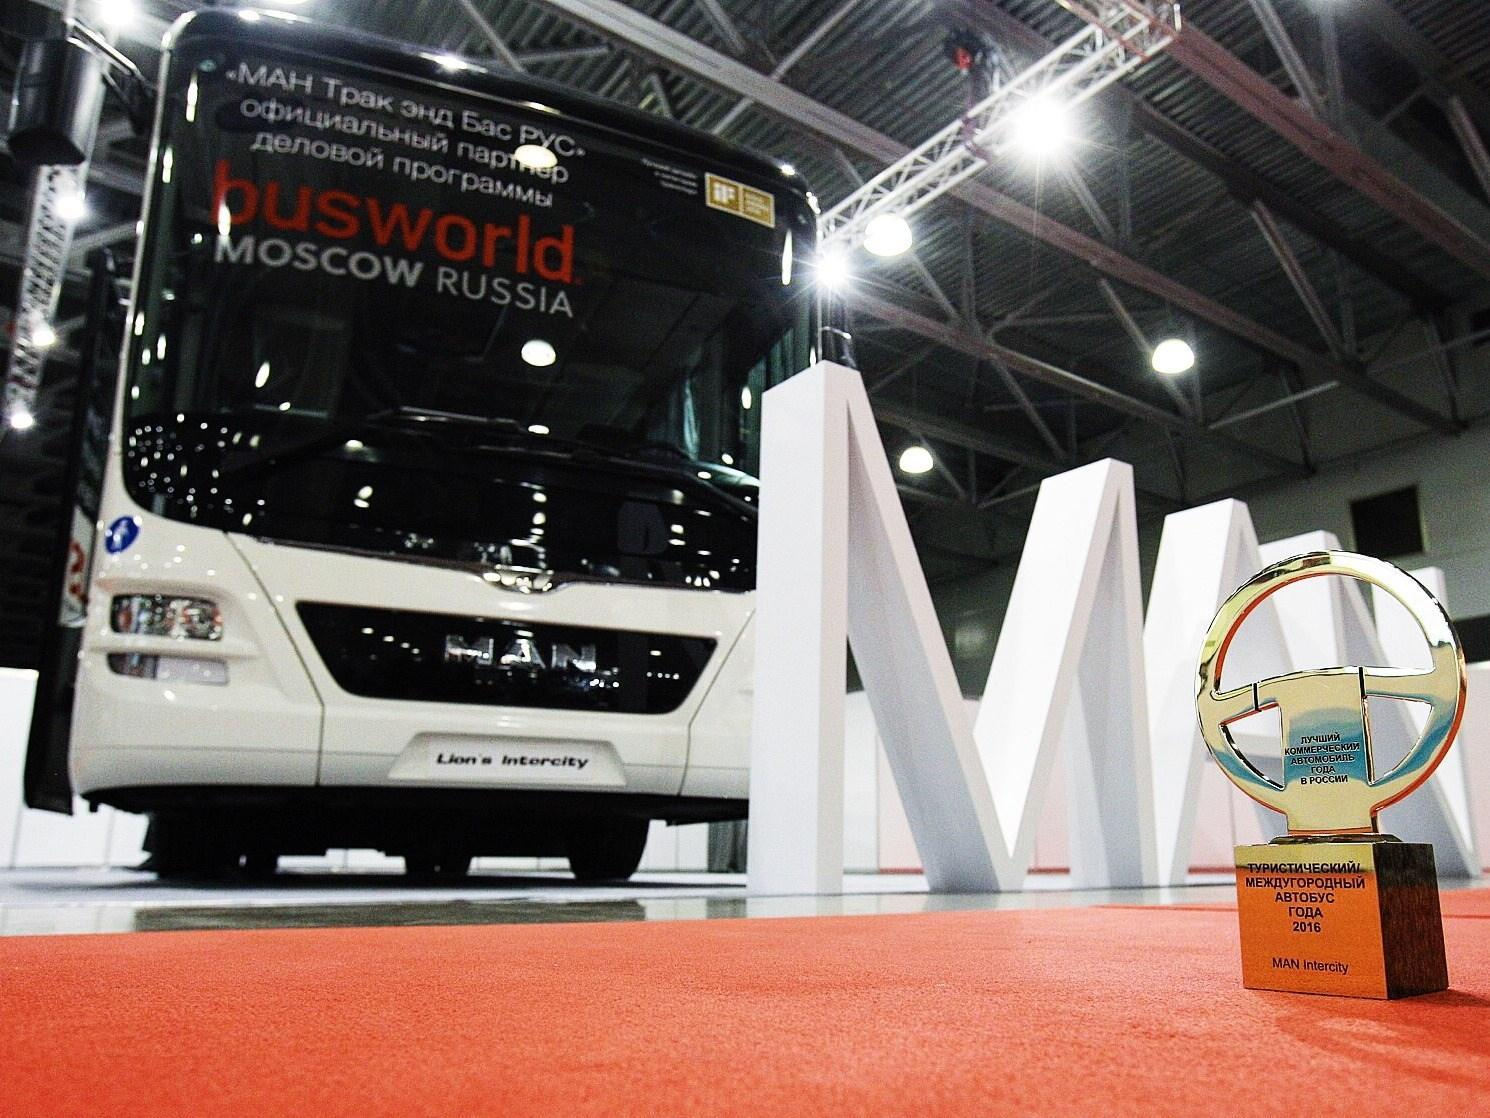 The jury of the 'Best Commercial Vehicles of the Year in Russia' competition awarded the MAN Lion's Intercity the top prize in the 'Coach:Intercity Bus' category